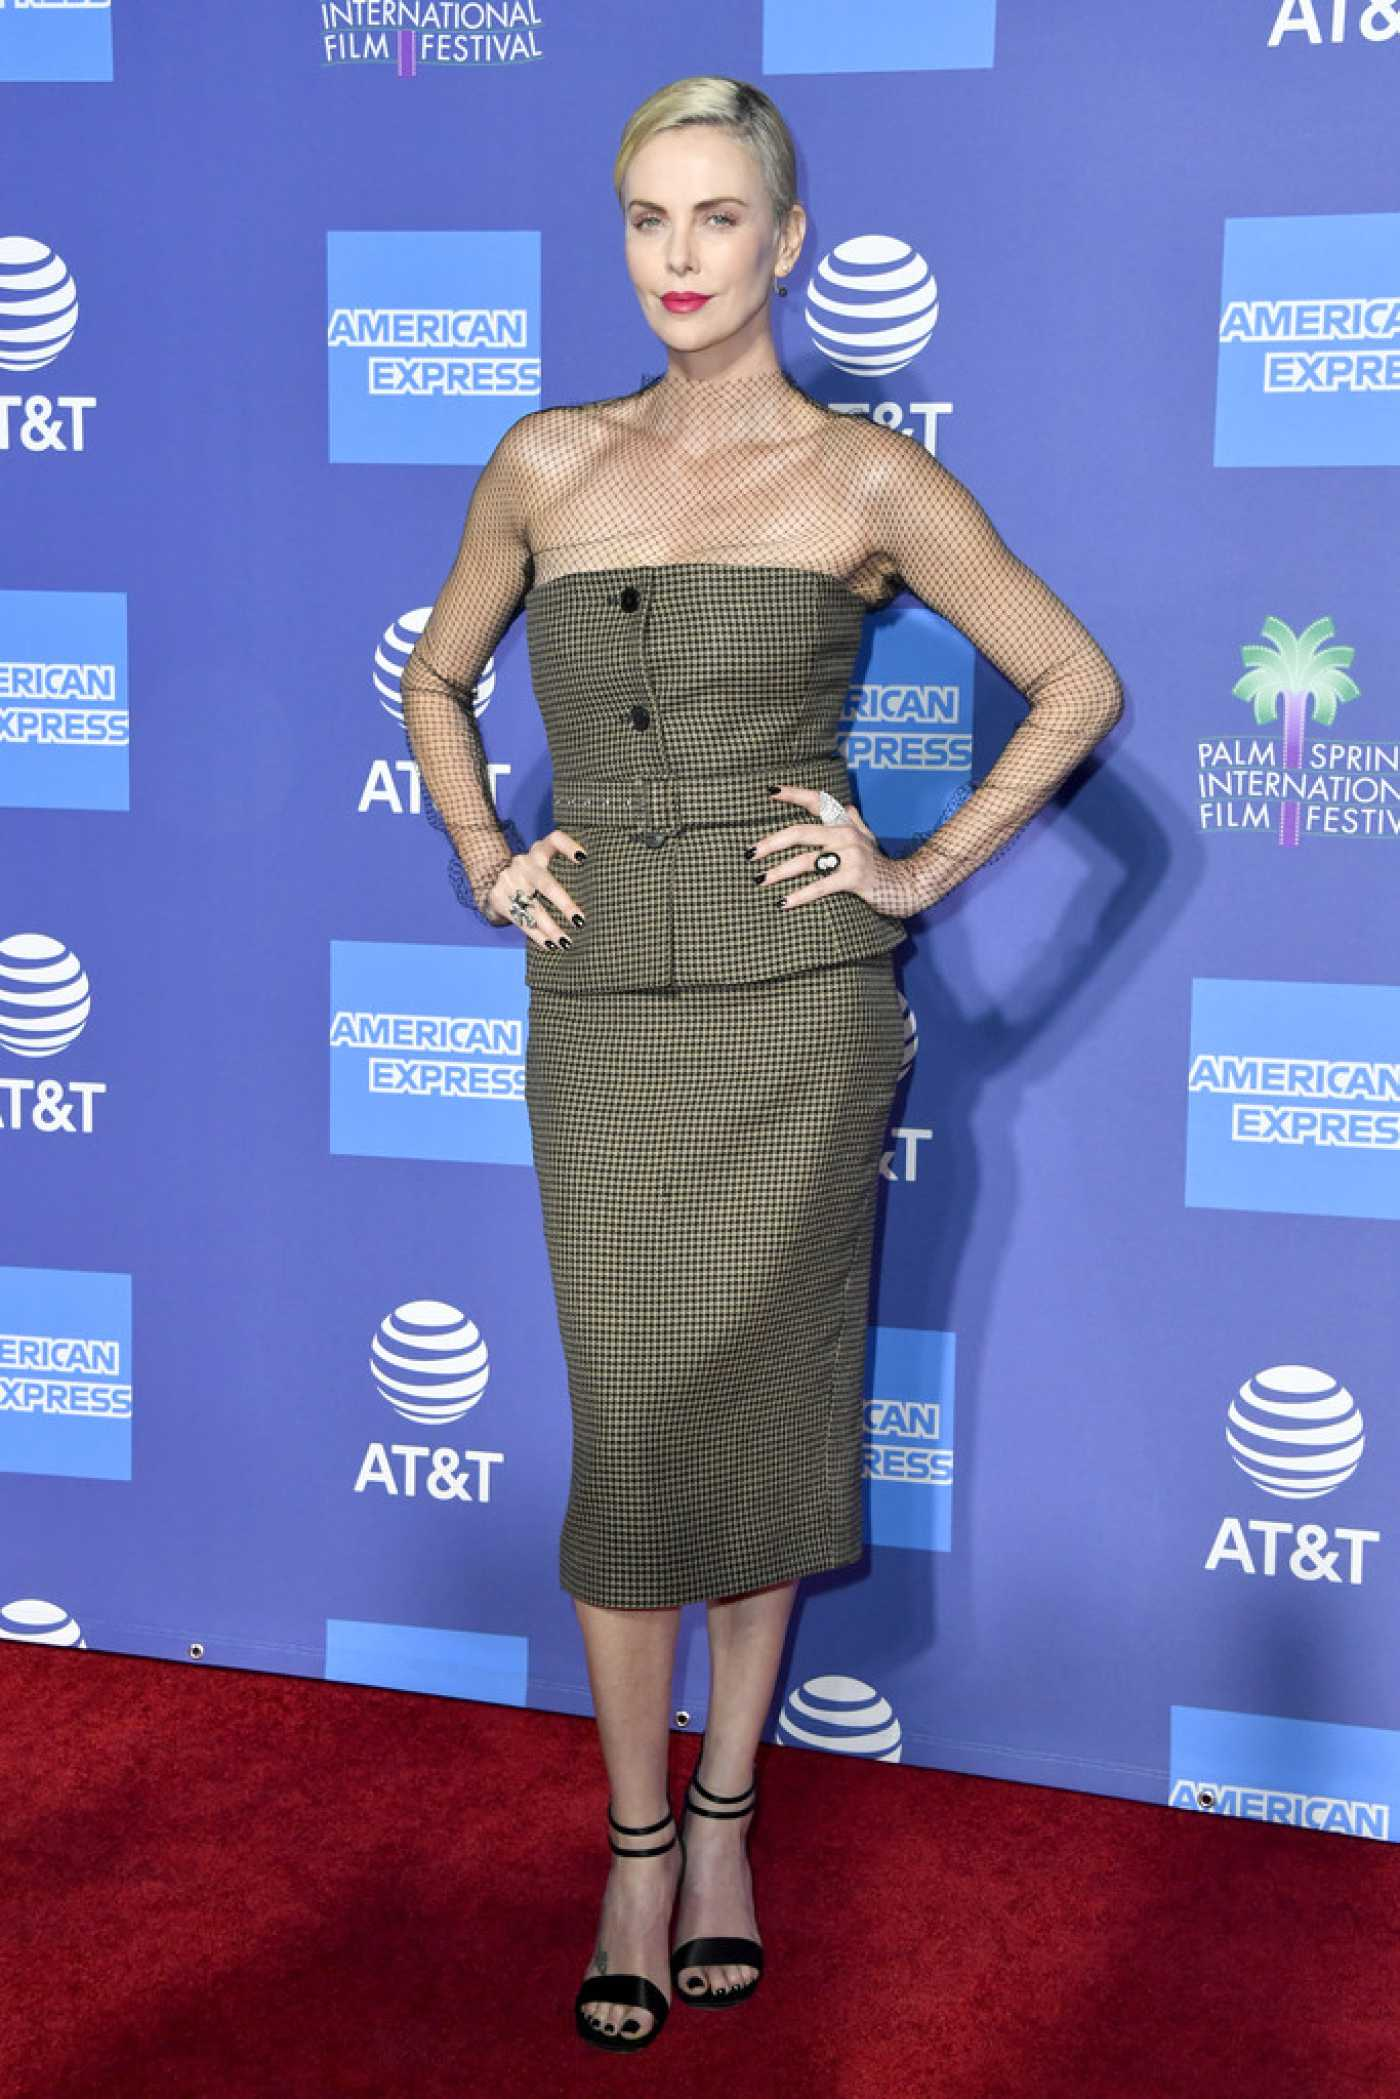 Charlize Theron Attends the 31st Annual Palm Springs International Film Festival in Palm Springs CA 01/02/2020